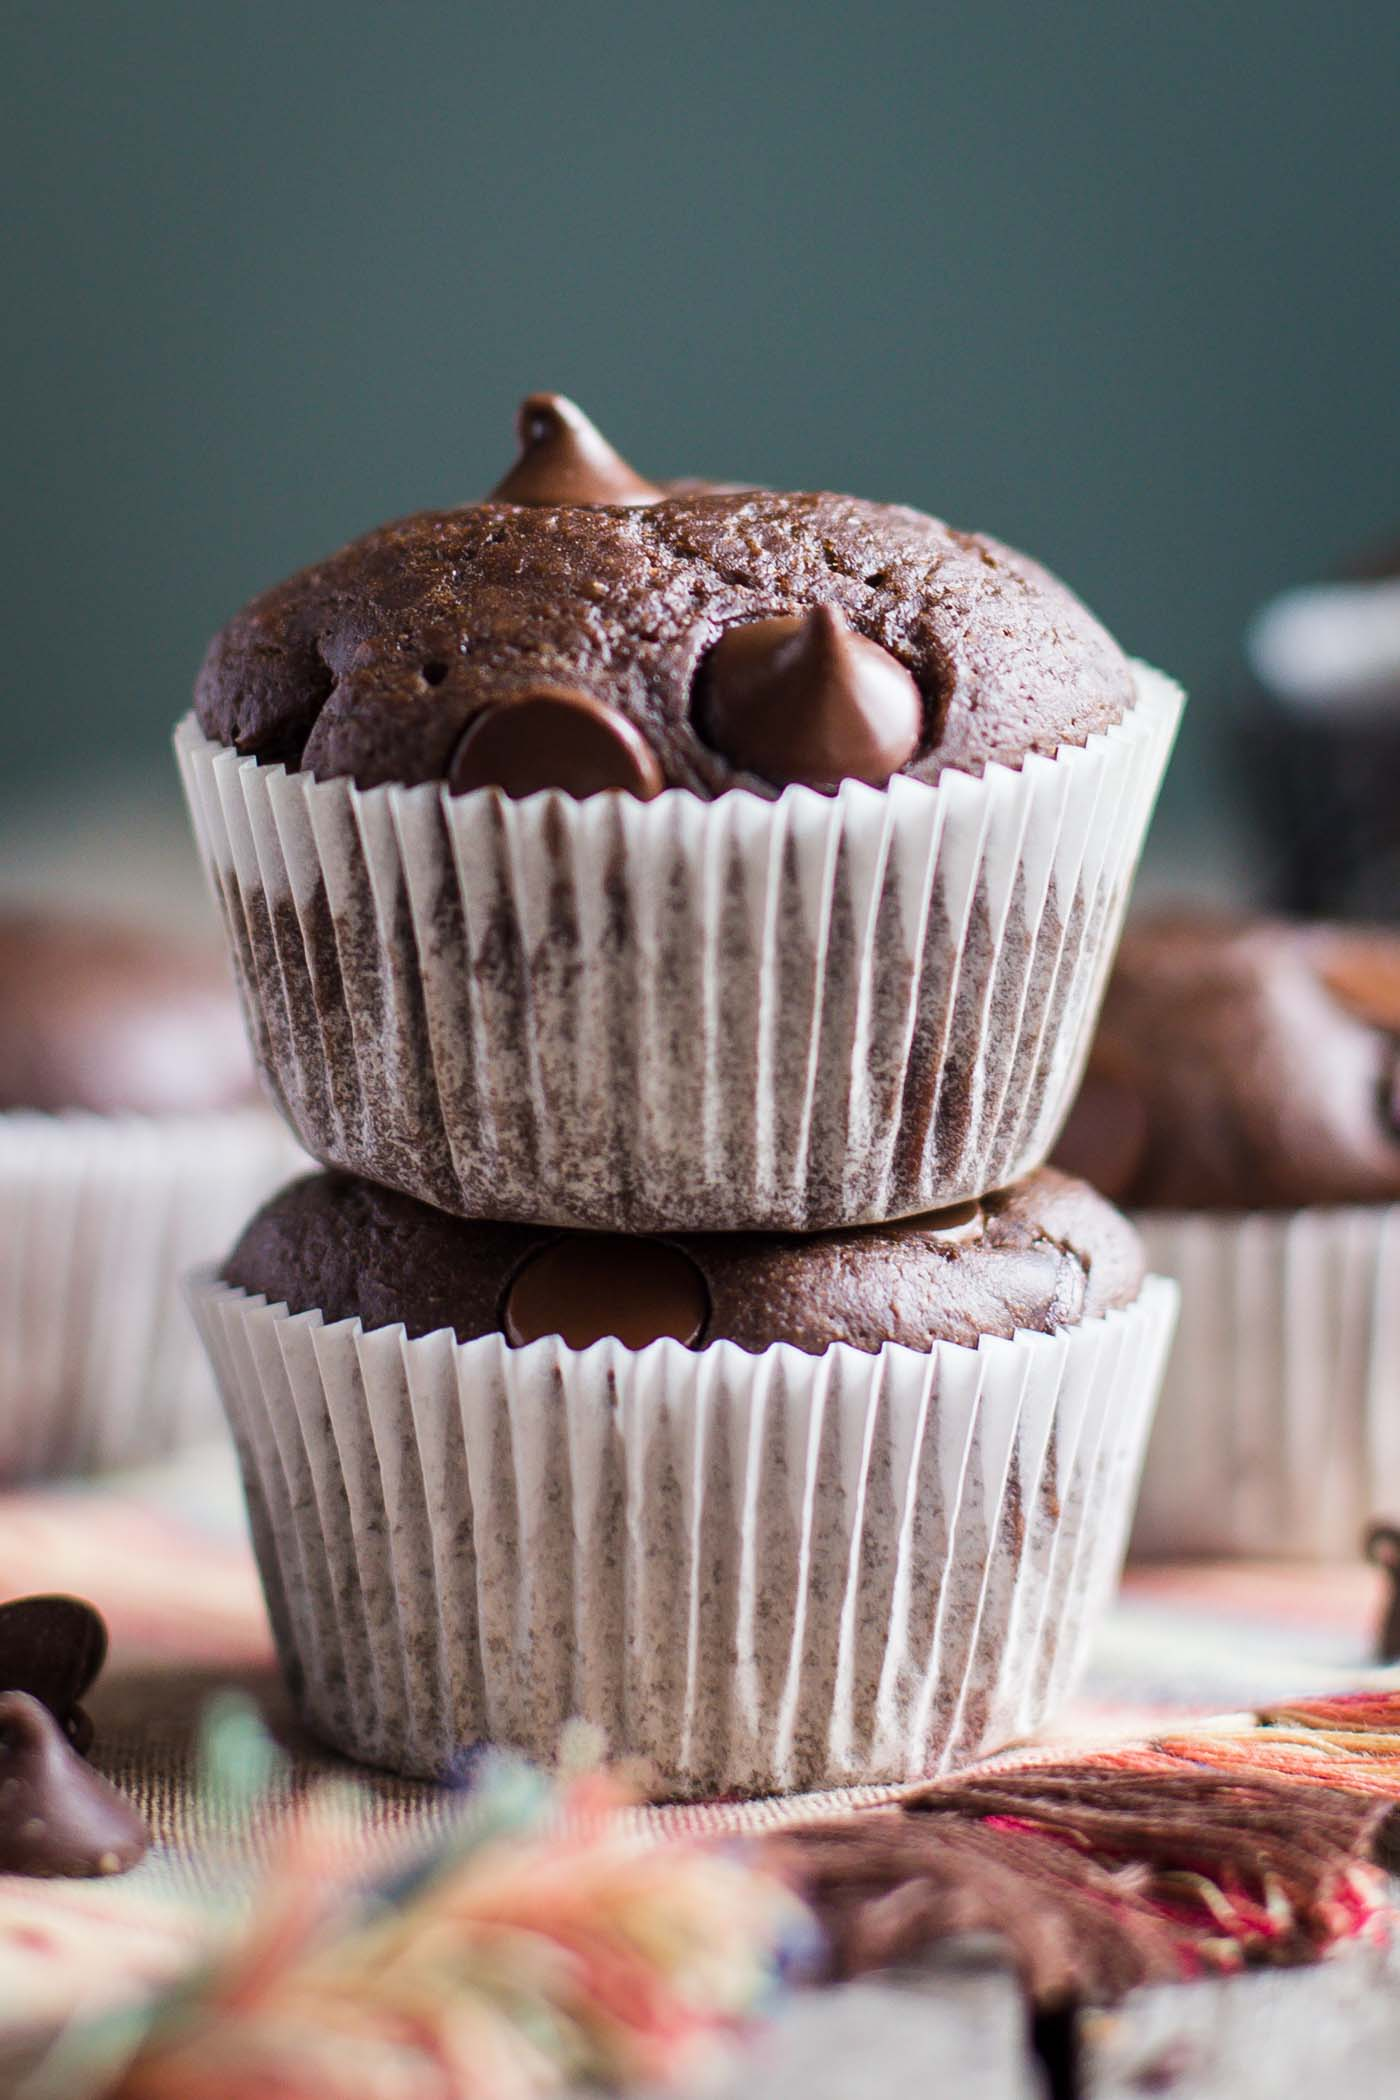 Double Chocolate VEGAN Muffins- this recipe is SO delicious and easy to bake. They taste just like normal muffins and will leave everyone satisfied! SO chocolaty and DELICIOUS!